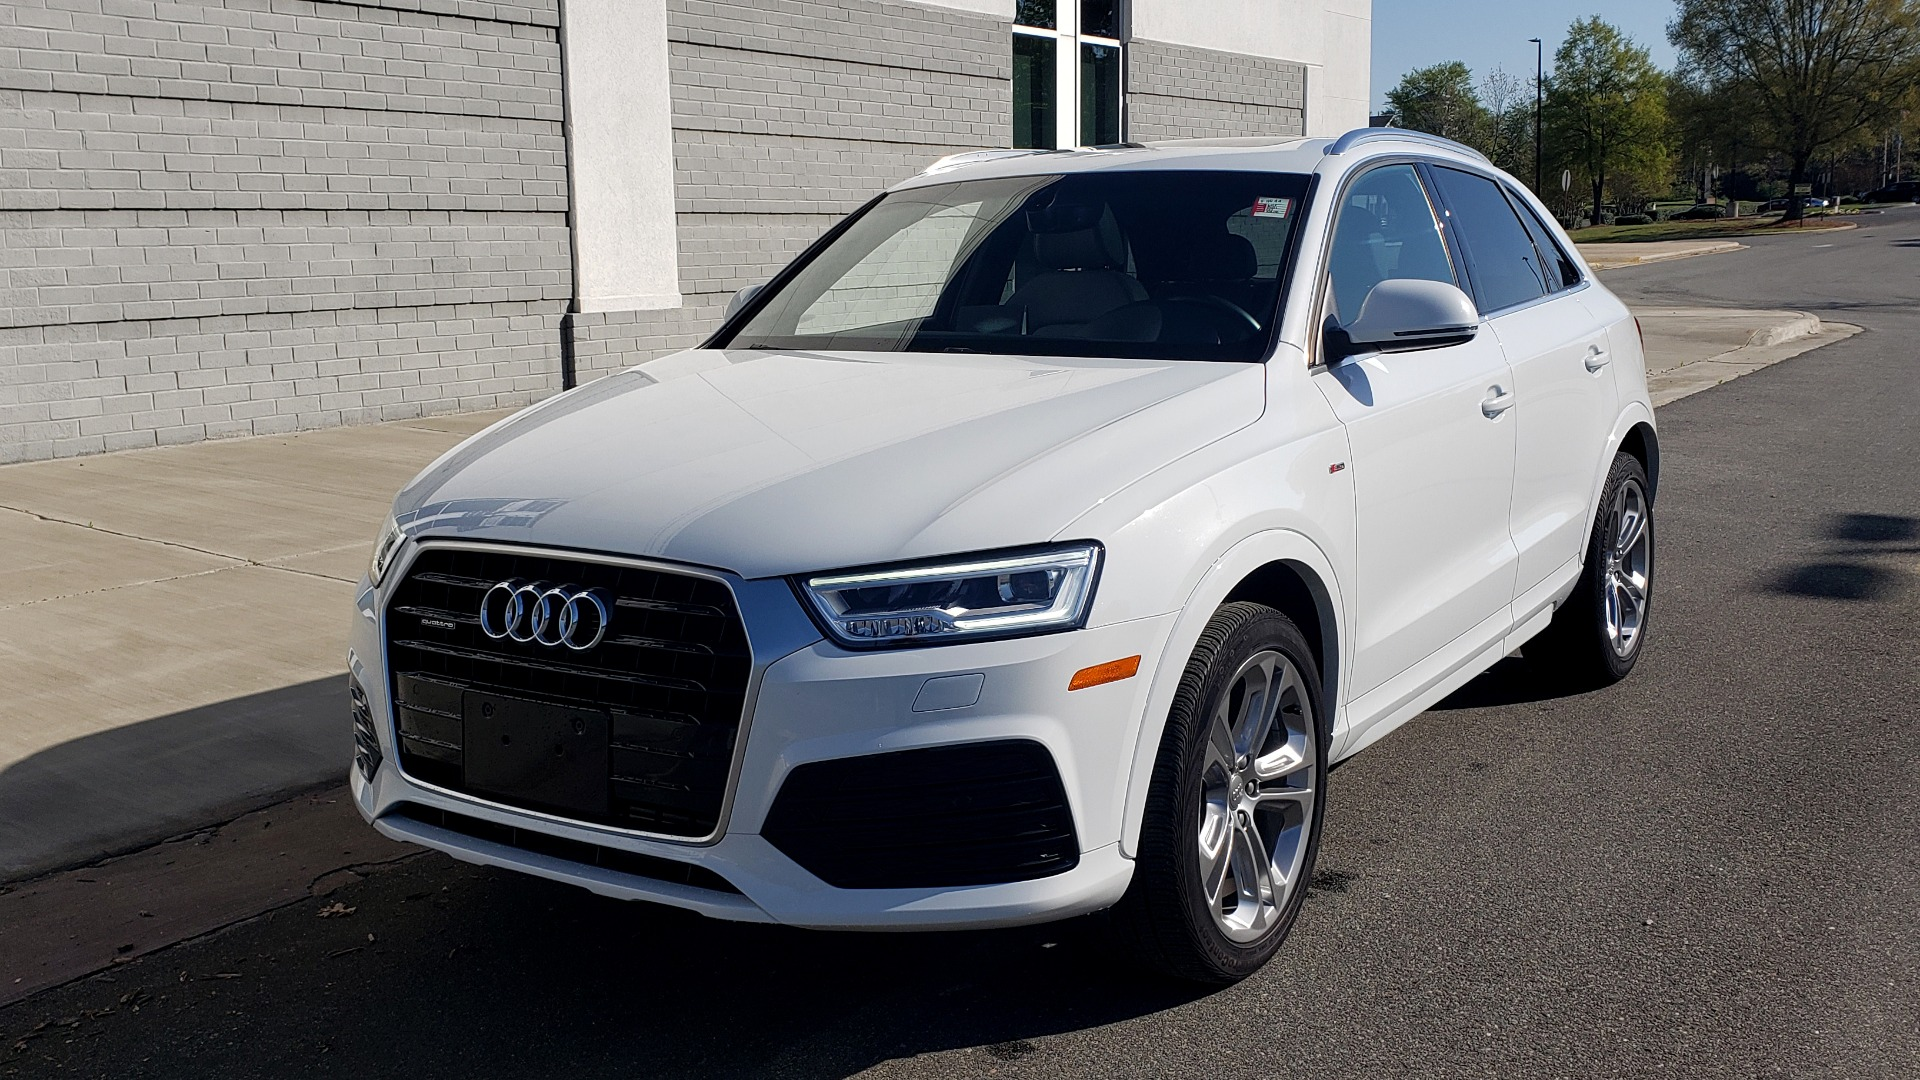 Used 2018 Audi Q3 PREMIUM PLUS 2.0T / SPORT PKG / NAV / BOSE / SUNROOF / REARVIEW for sale Sold at Formula Imports in Charlotte NC 28227 1